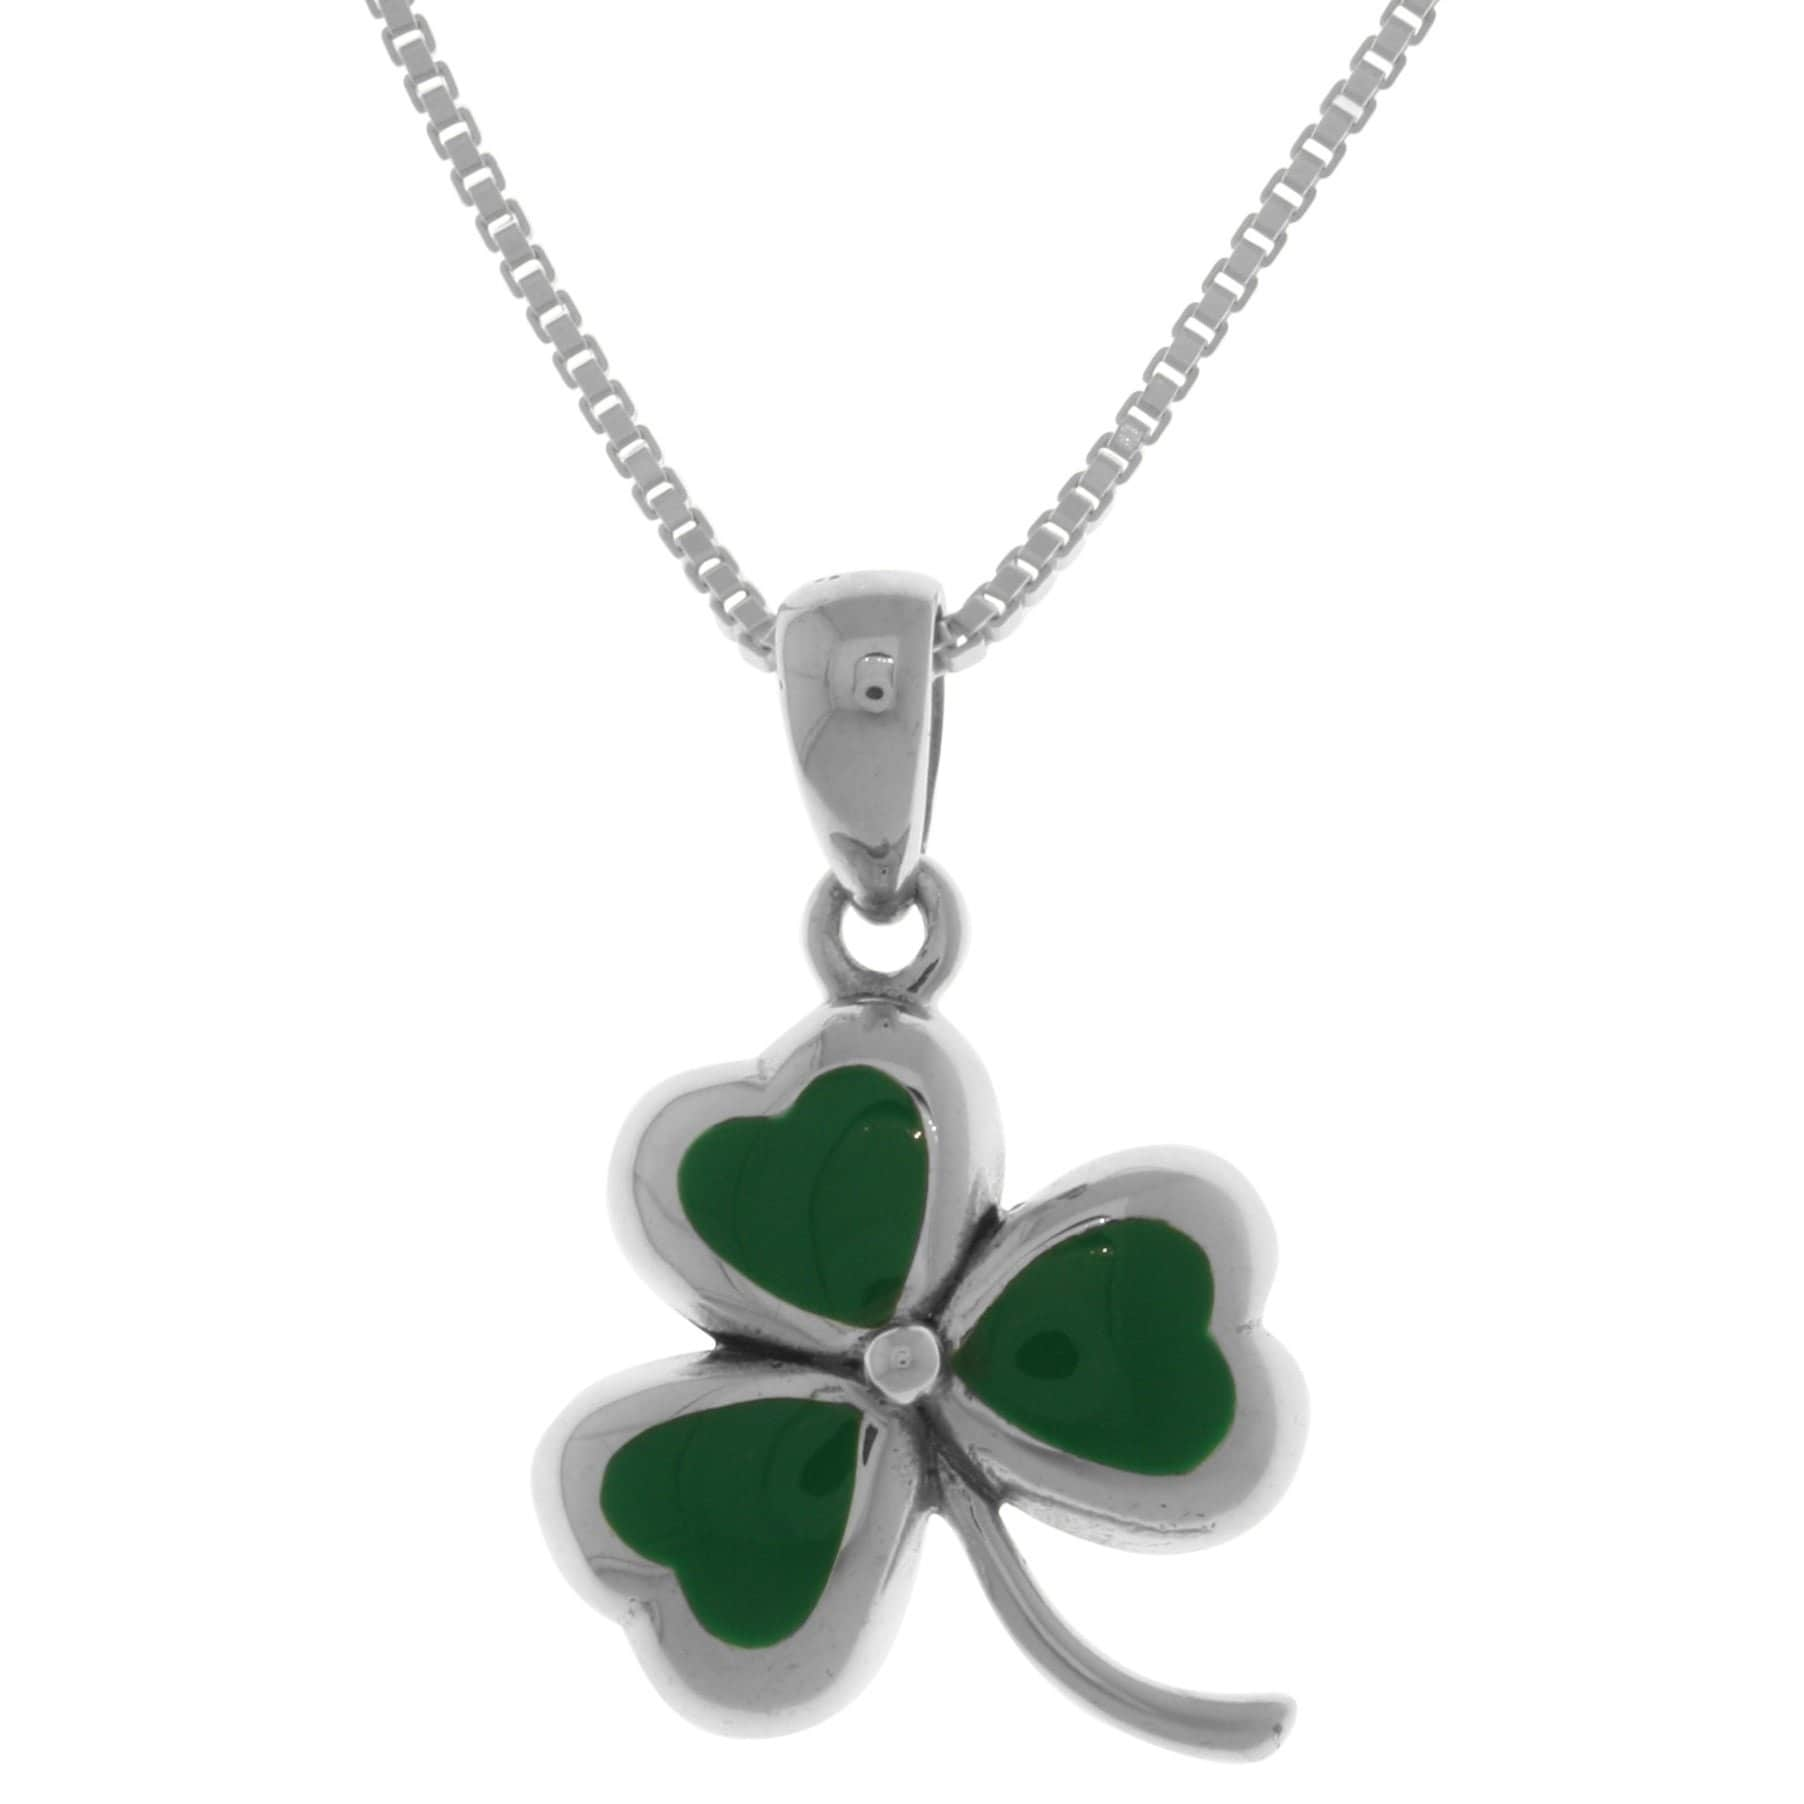 14k Yellow Gold Irish Celtic Shamrock 3 Leaf Clover Pendant Rope Chain Necklace